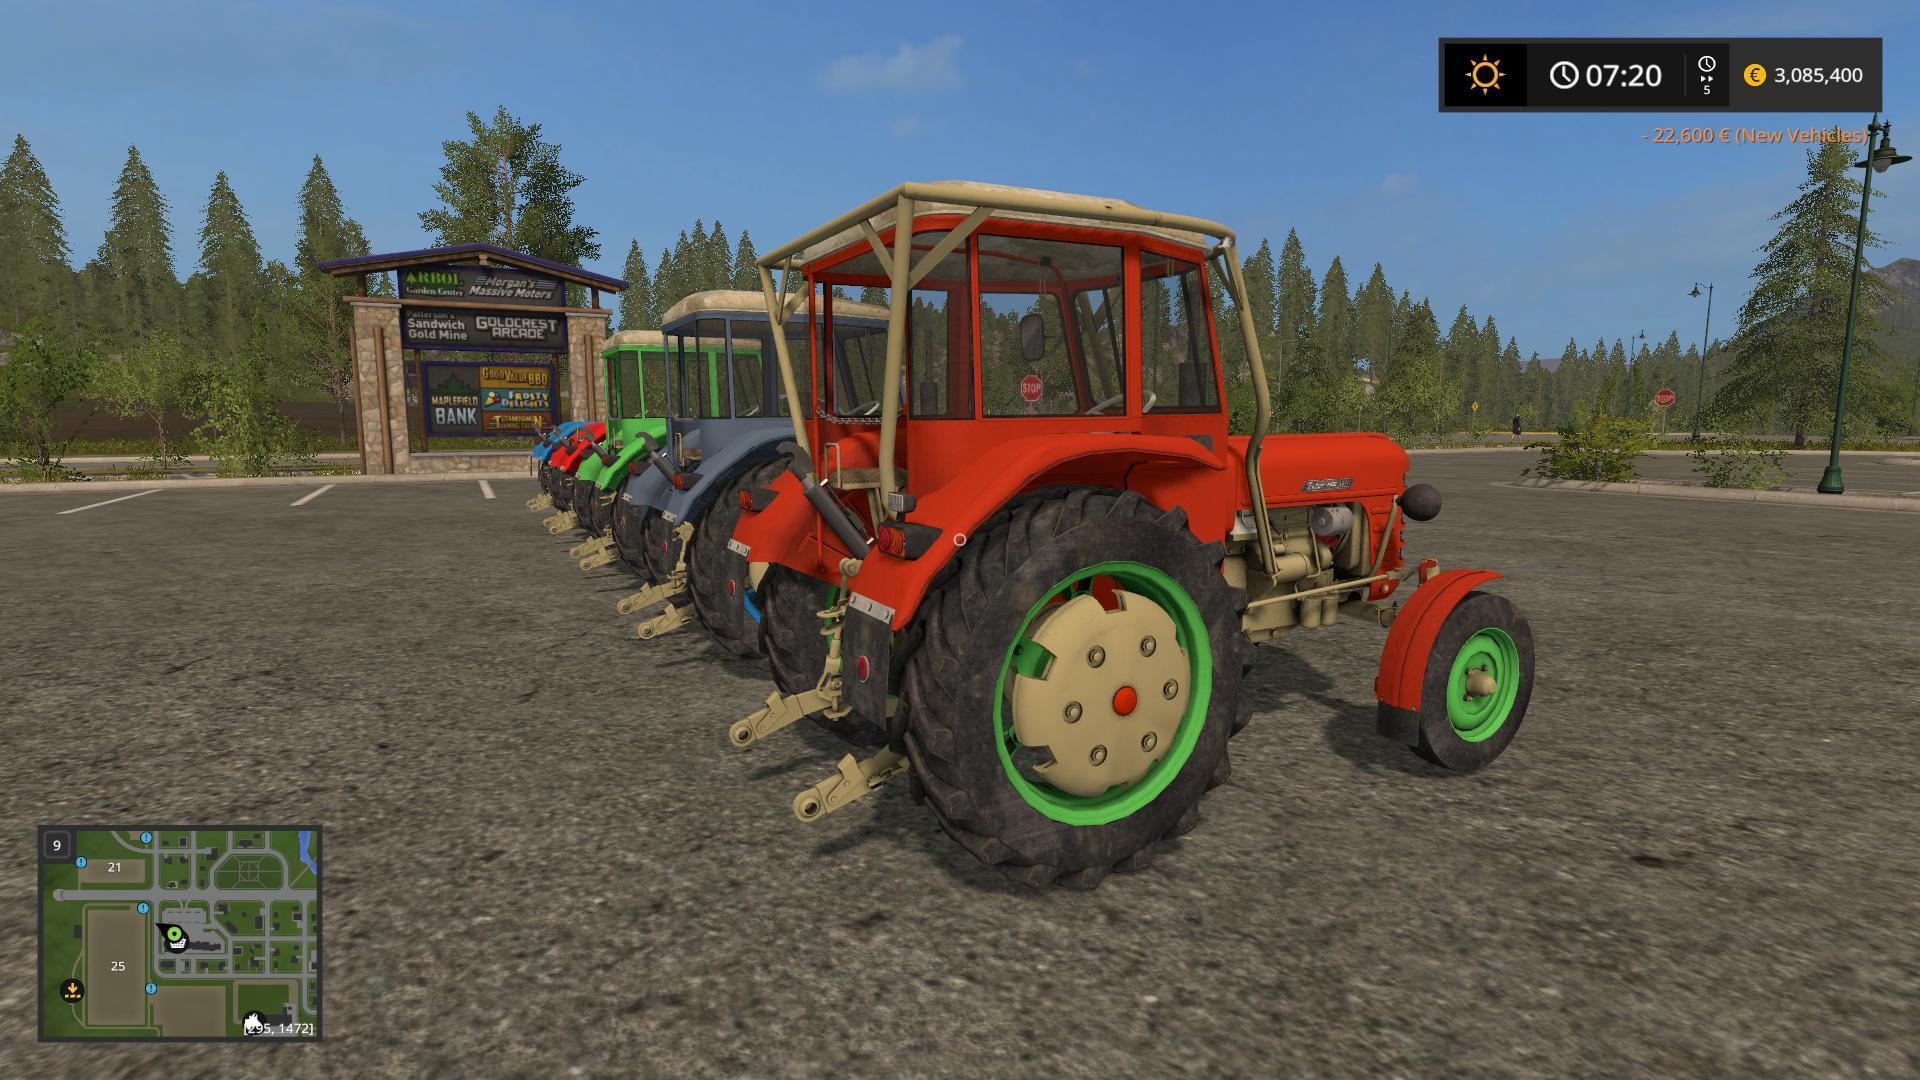 Farming Simulator 2017 mods, FS 17 mods, LS 2017 mods